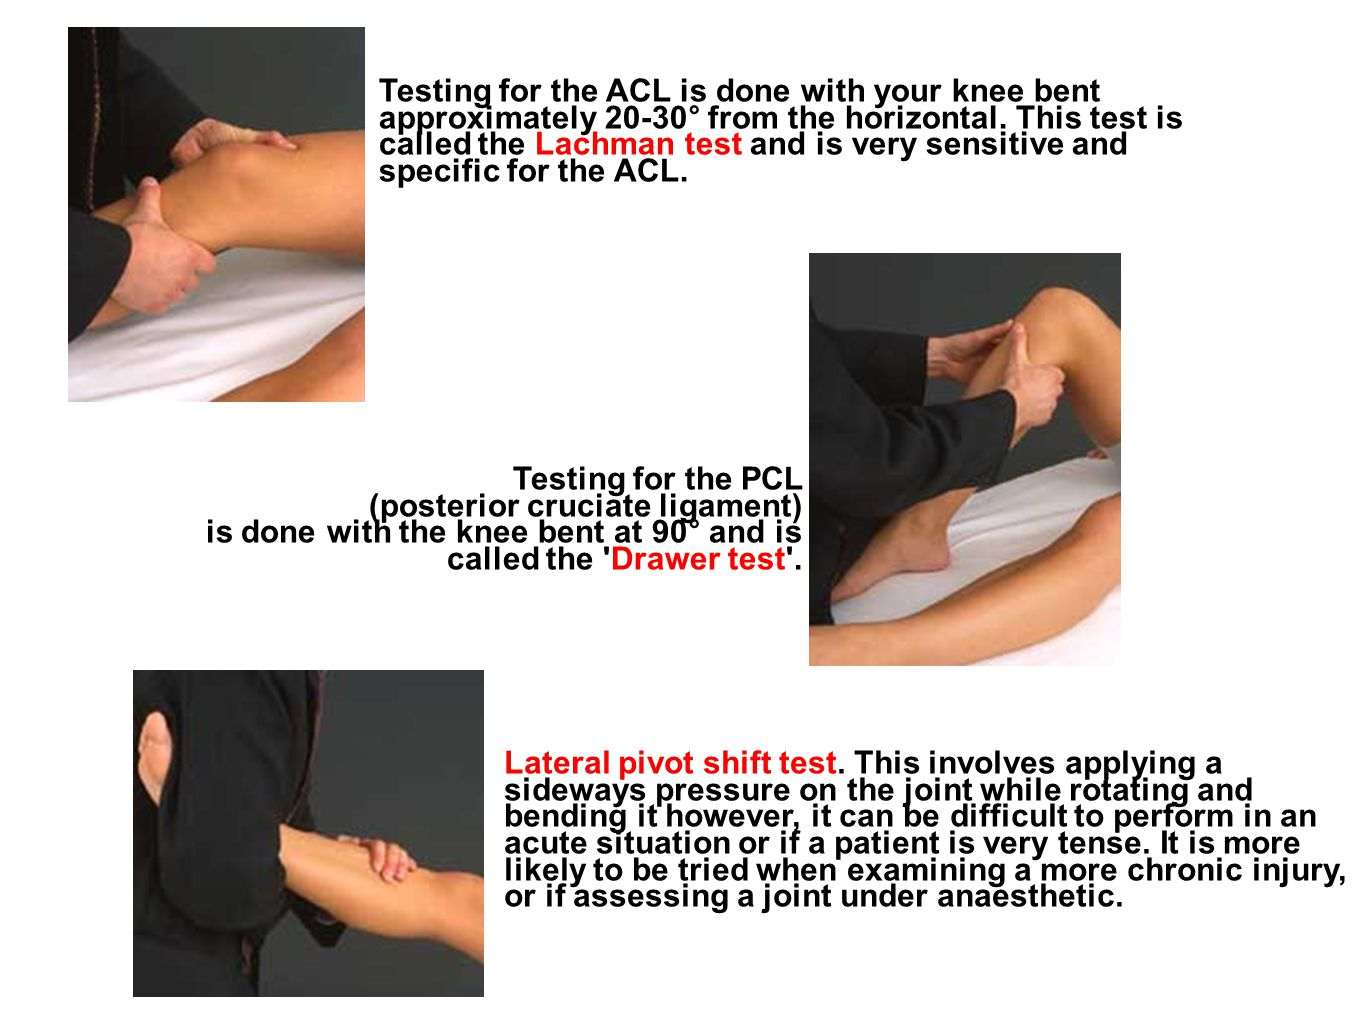 Testing for the ACL is done with your knee bent approximately 20-30° from the horizontal. This test is called the Lachman test and is very sensitive and specific for the ACL.